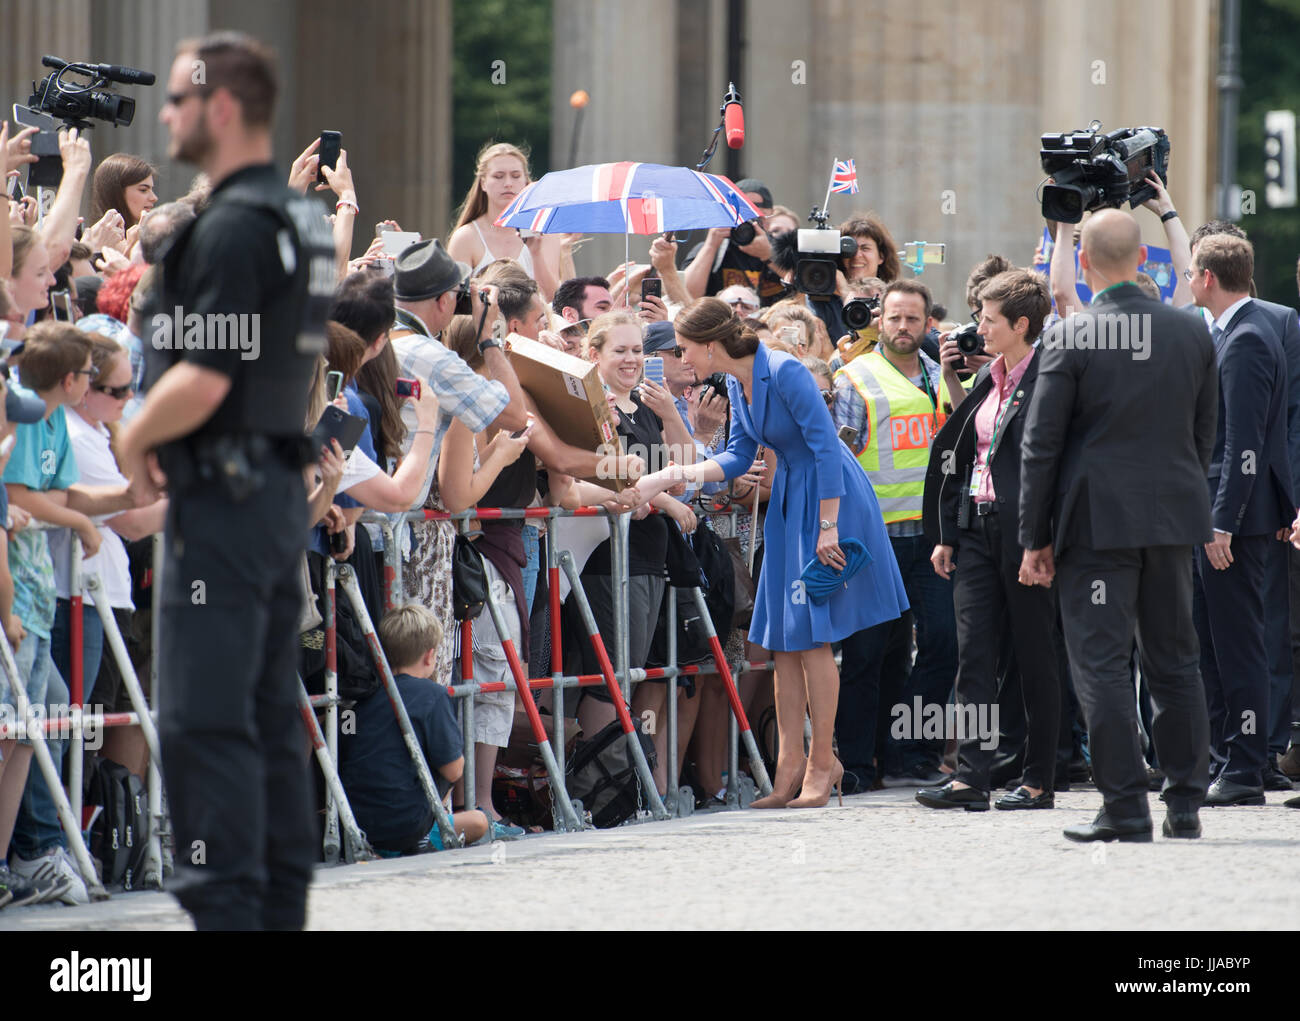 Berlin, Deutschland. 19th July, 2017. Die britische Herzogin Kate besucht am 19.07.2017 das Brandenburger Tor in Stock Photo